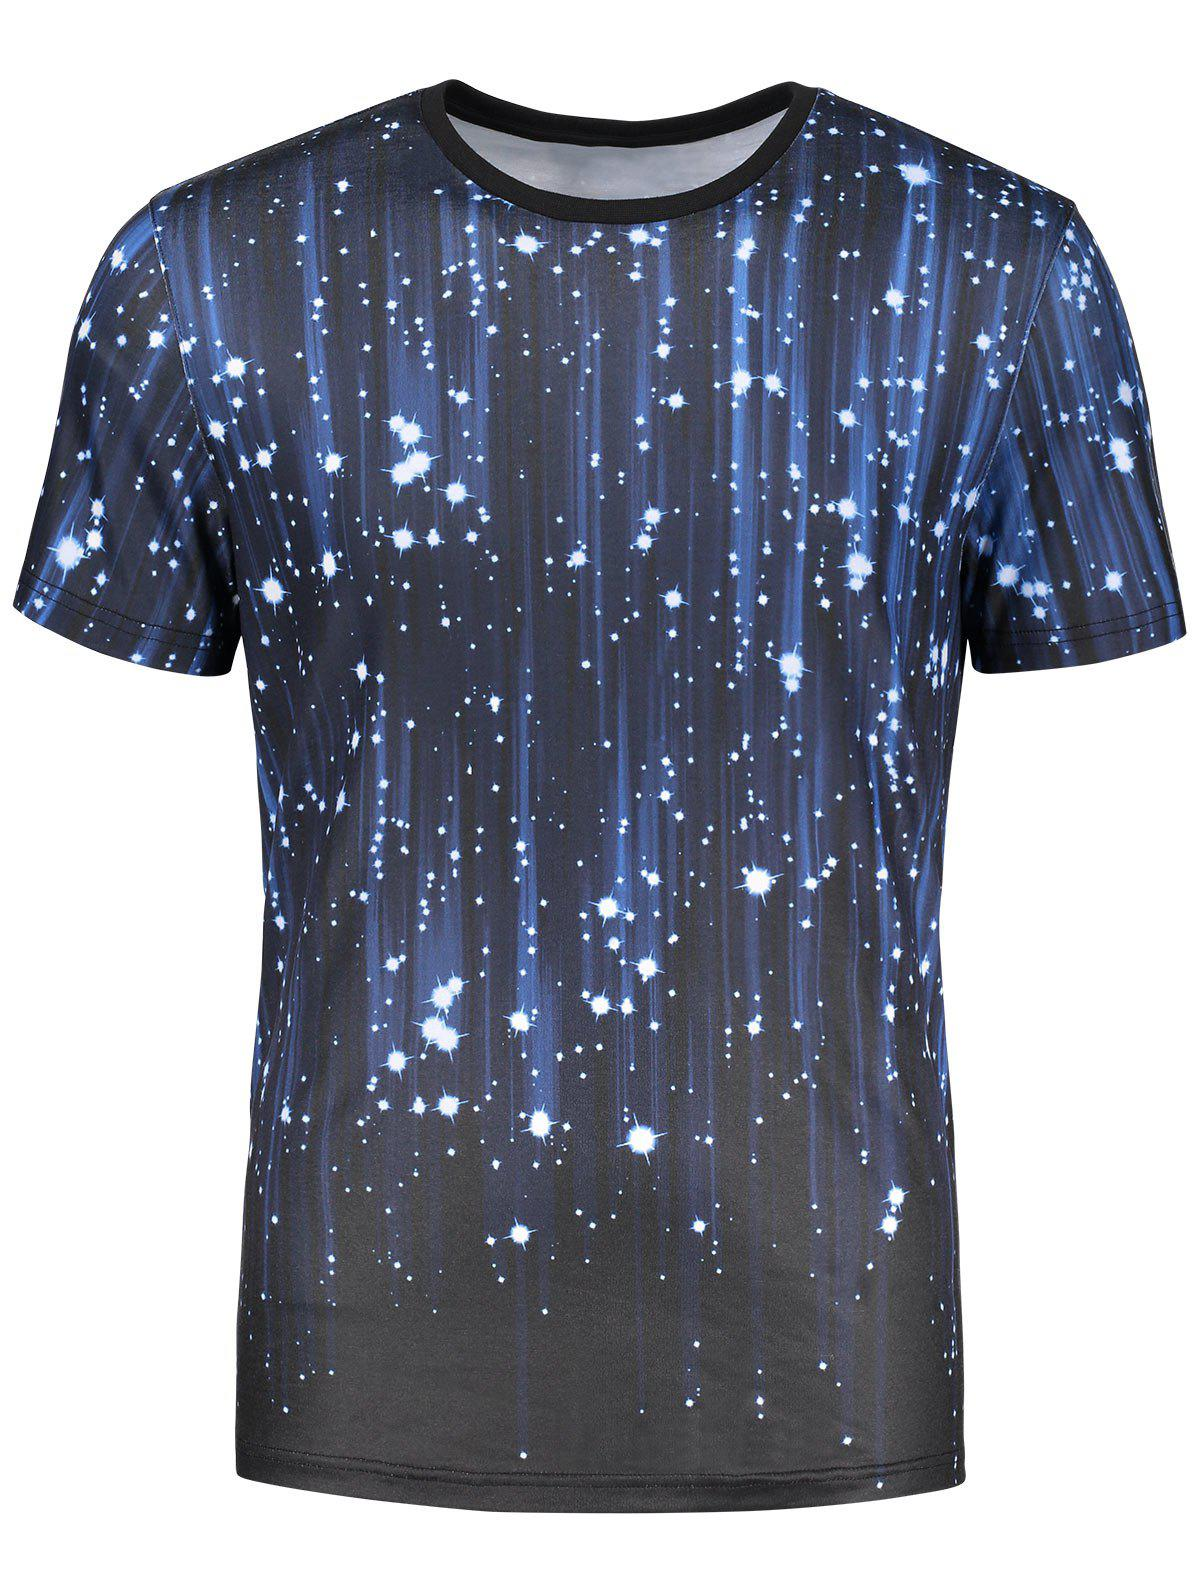 3D Galaxy Print Short Sleeve T-shirt - COLORMIX M